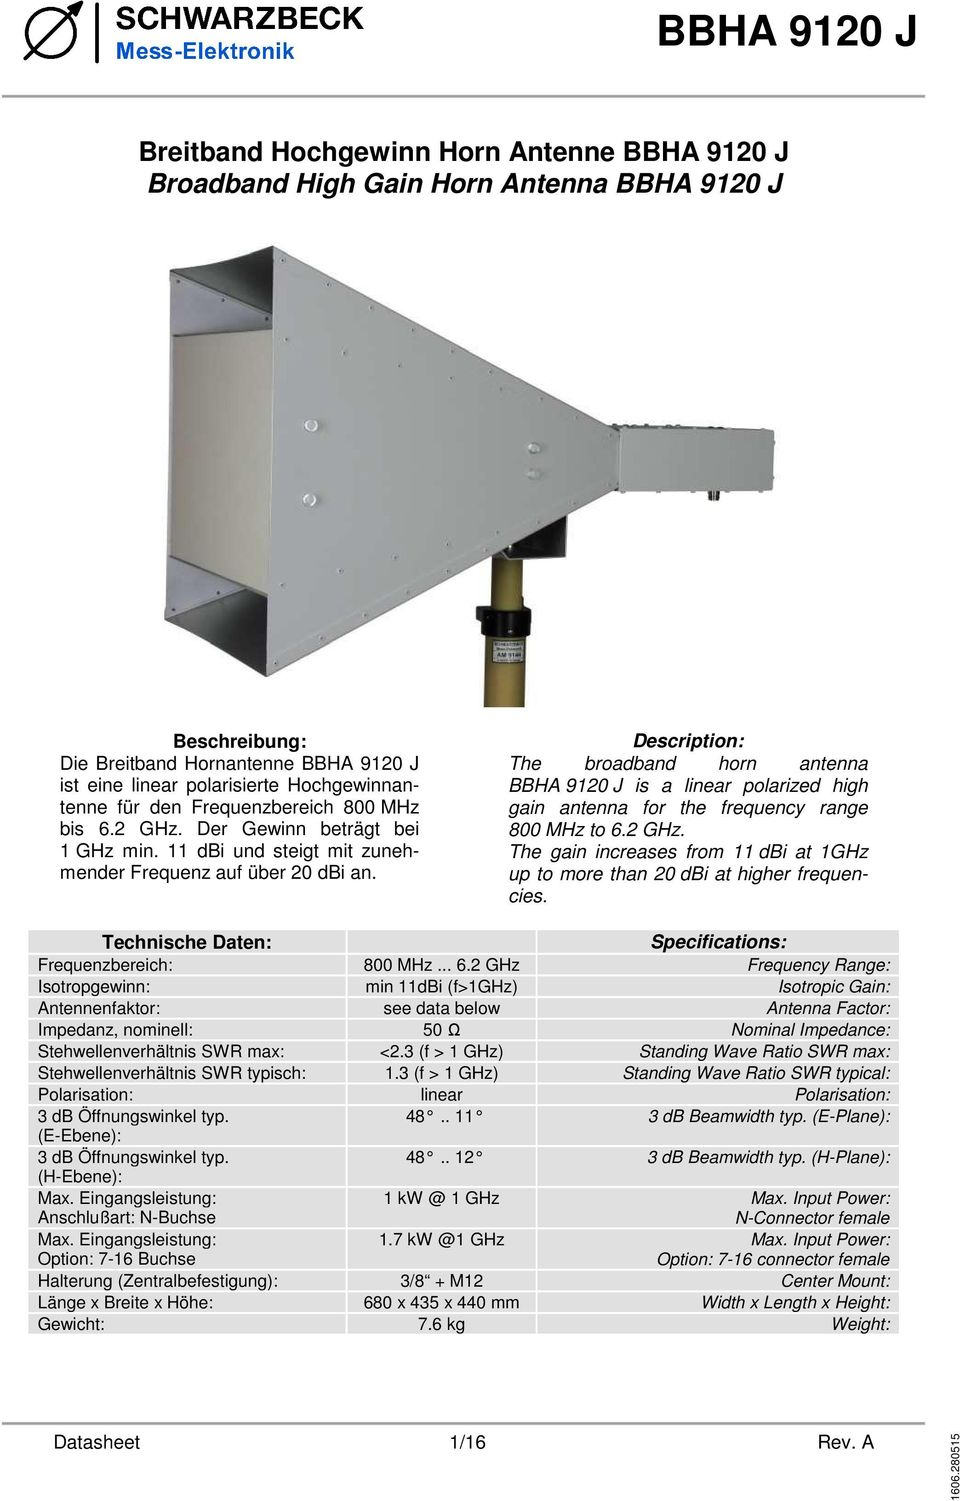 Description: The broadband horn antenna BBHA 9120 J is a linear polarized high antenna for the frequency range 800 MHz to 6.2 GHz.